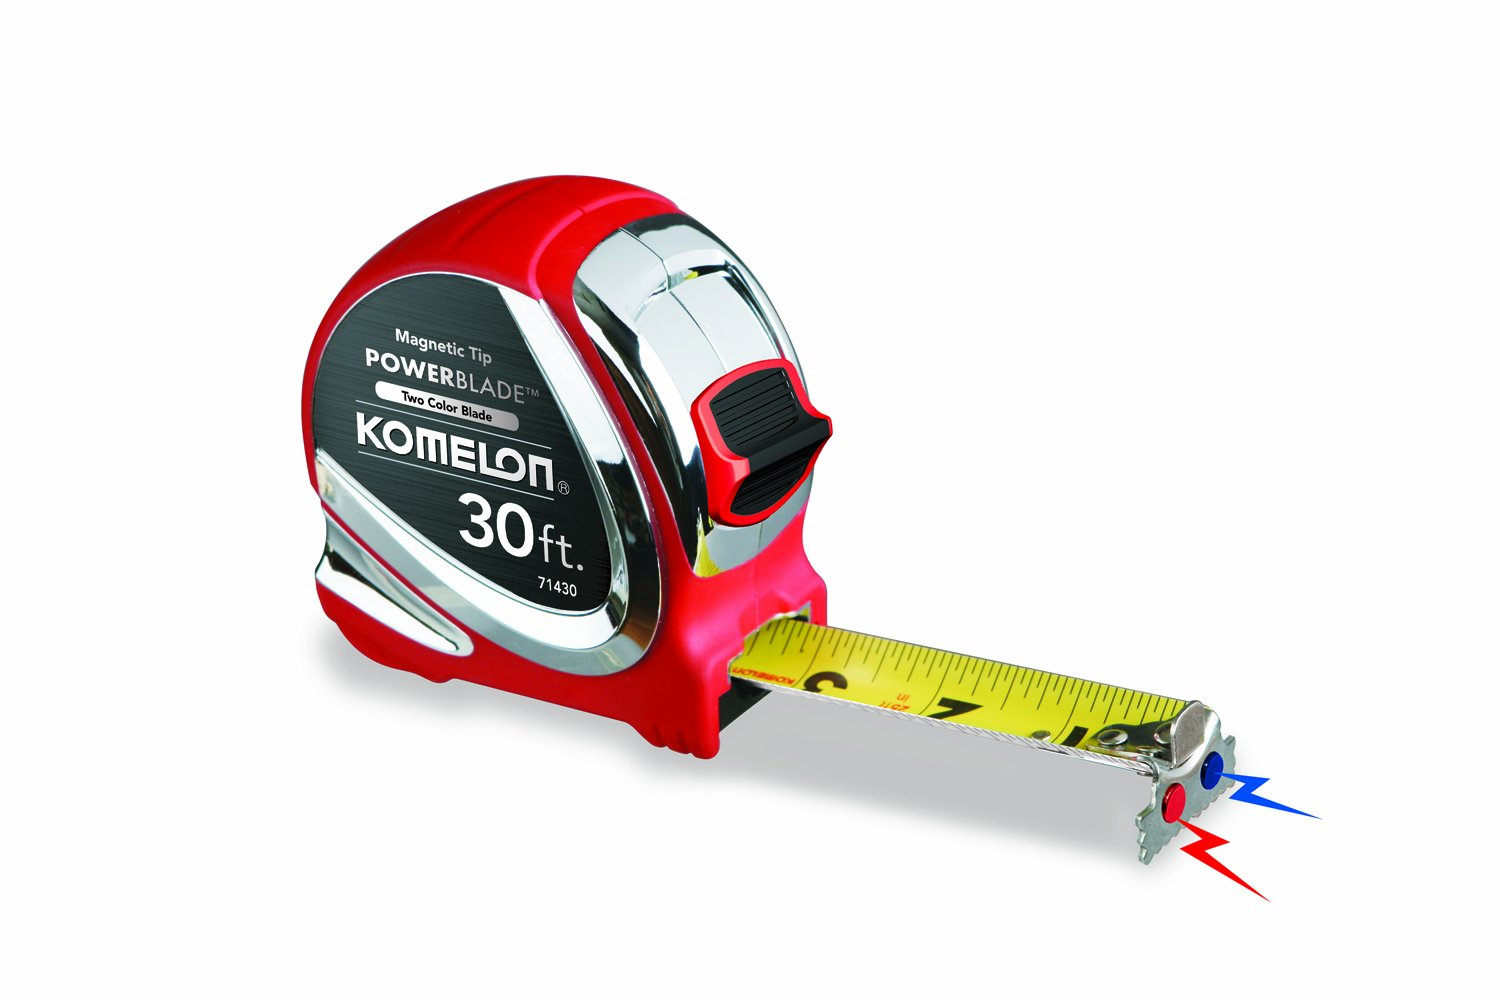 Komelon 71430 30-Foot x 1.06-Inch Magnetic PowerBlade Tape Measure by Komelon